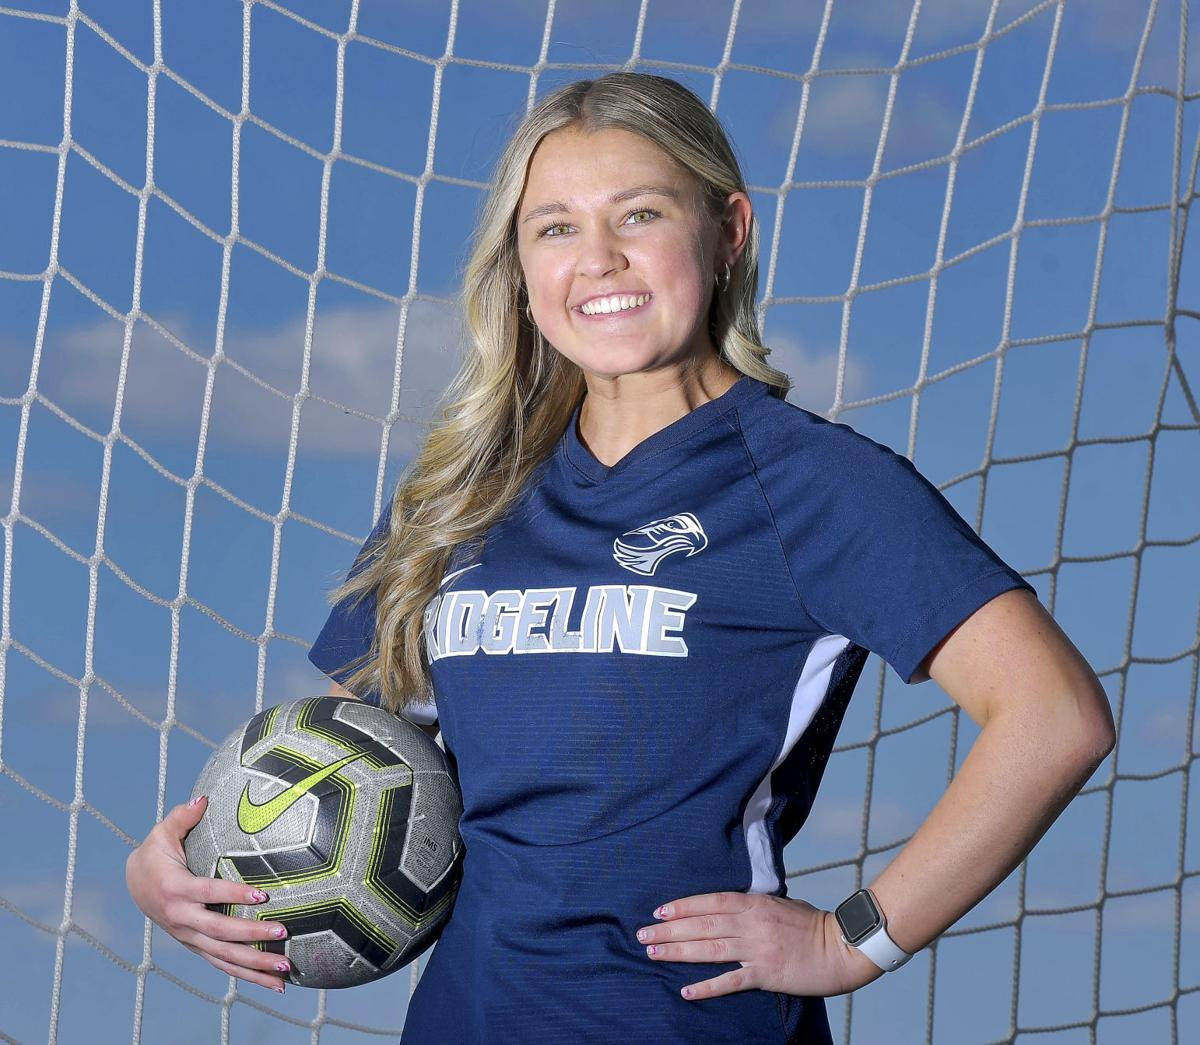 All-Valley Girls Soccer: Rasmussen was a game changer for Riverhawks